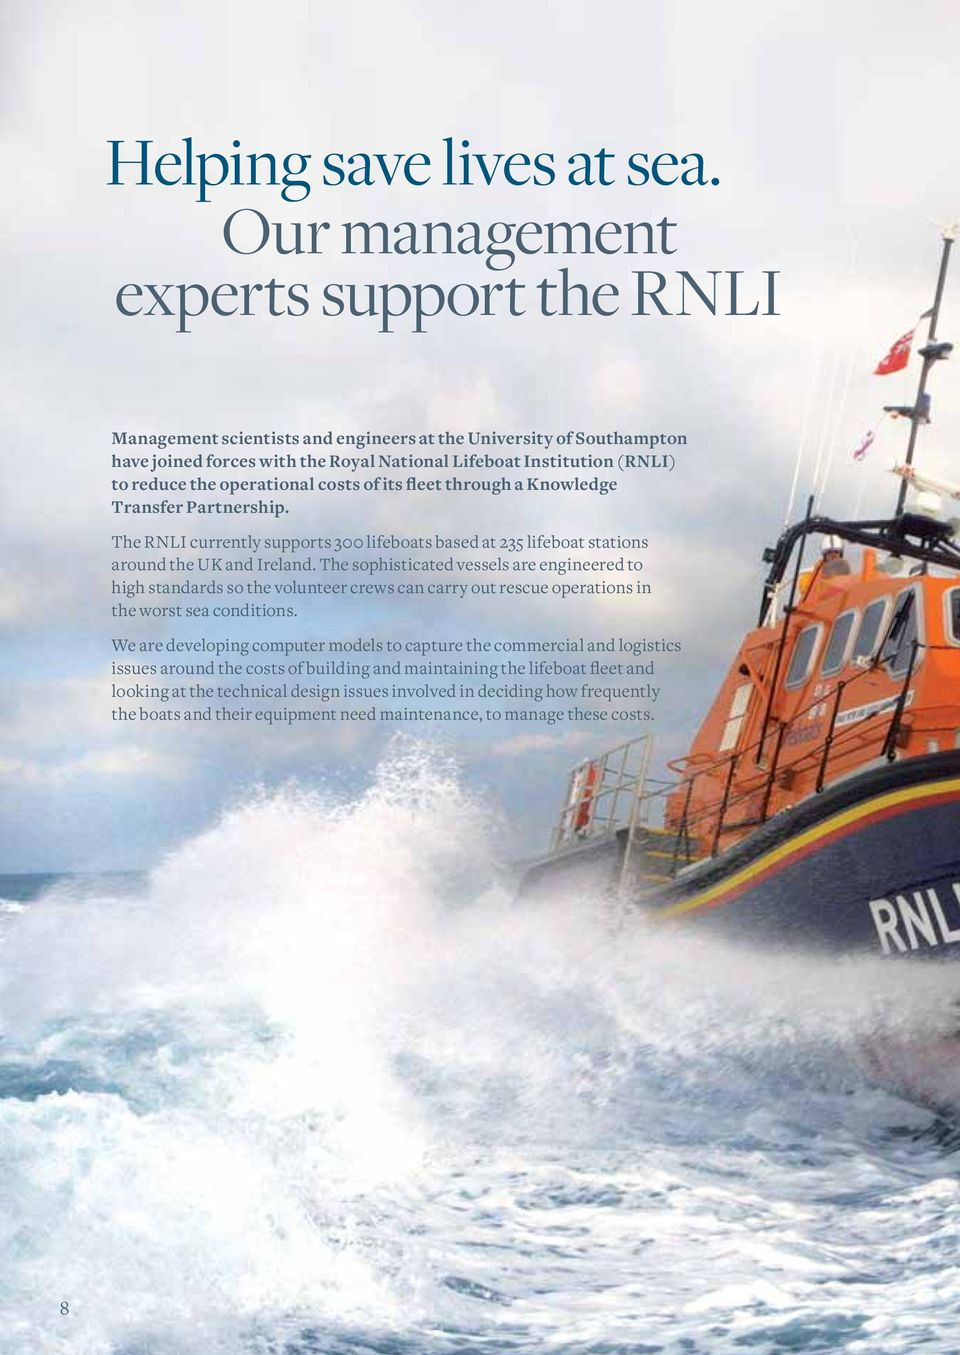 operational costs of its fleet through a Knowledge Transfer Partnership. The RNLI currently supports 300 lifeboats based at 235 lifeboat stations around the UK and Ireland.